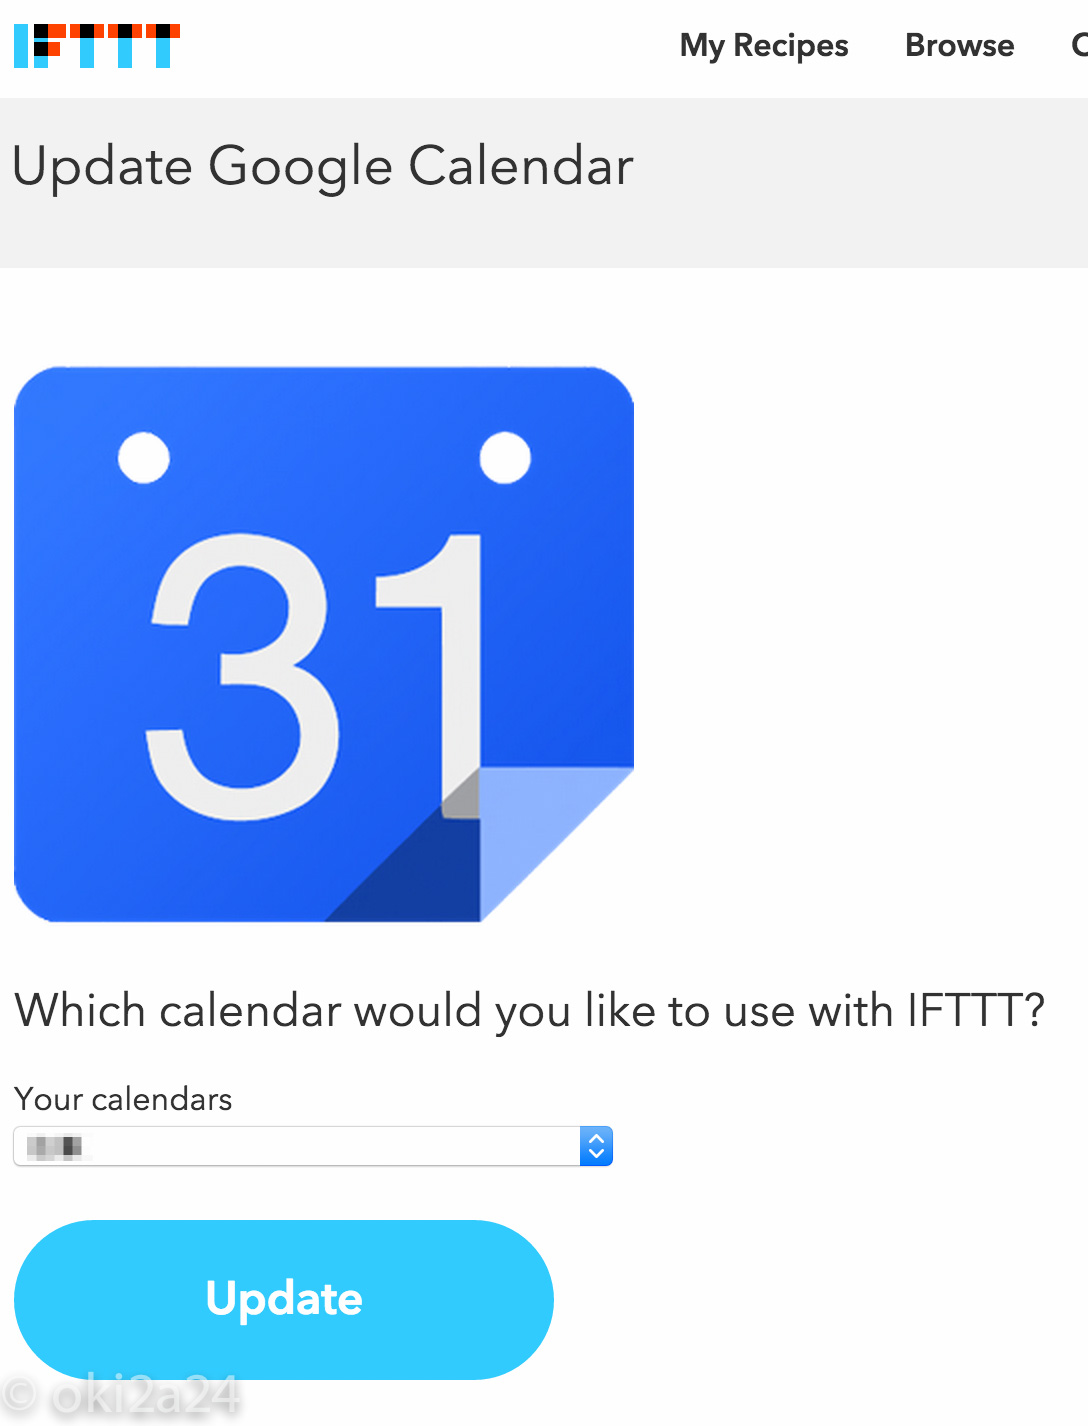 Which calendar would you like to use with IFTTT?